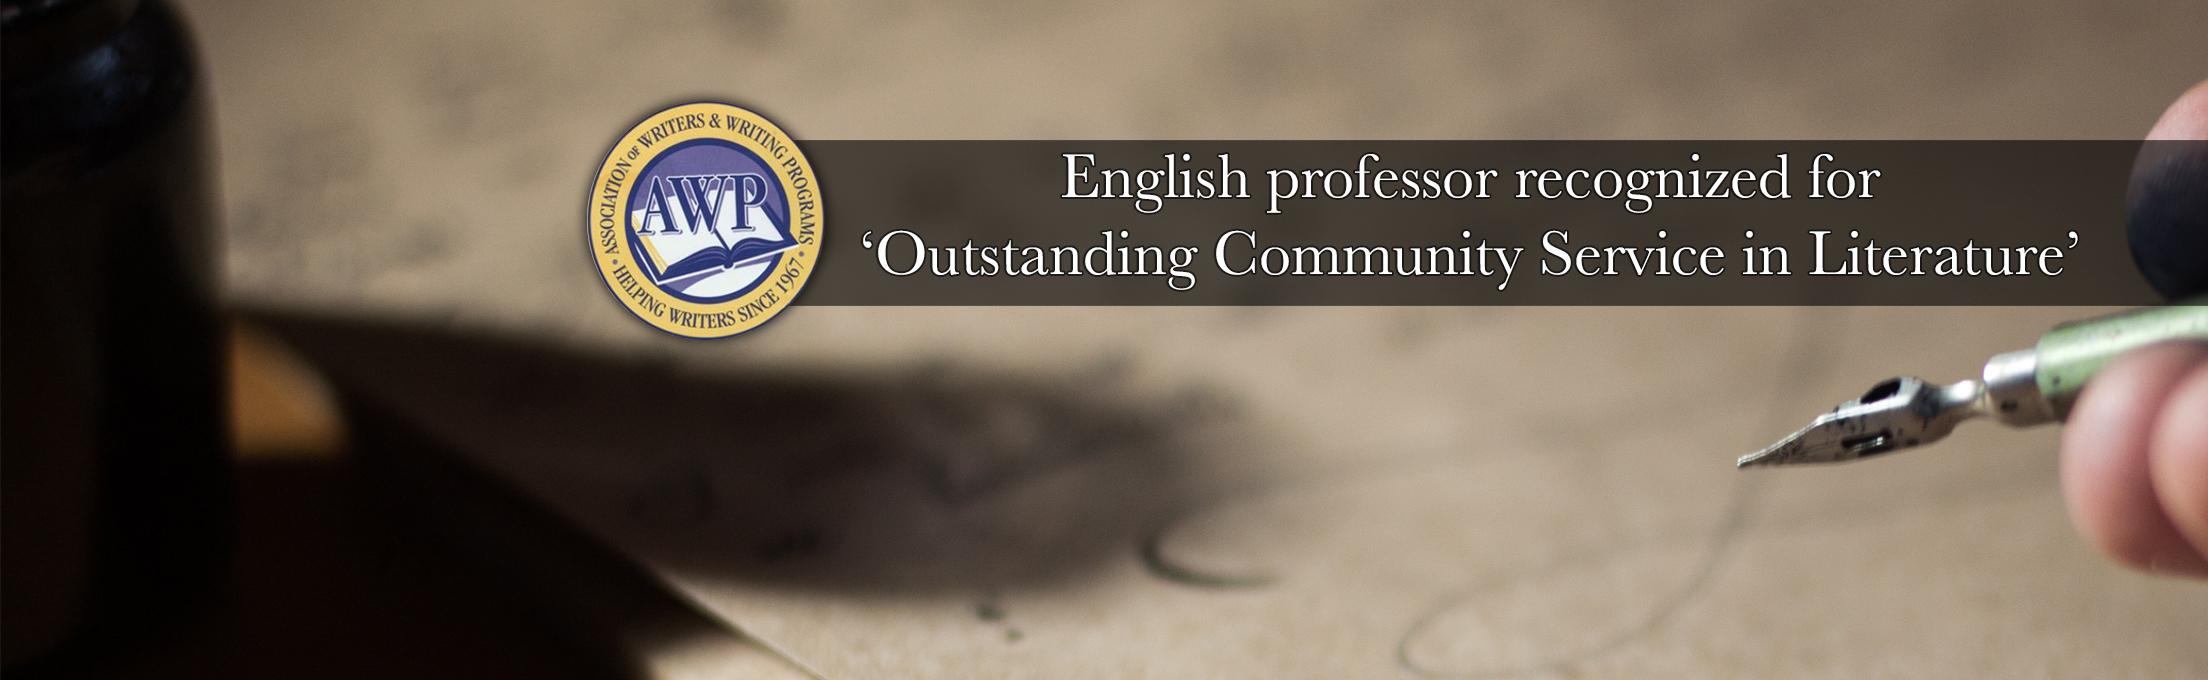 English professor recognized for 'Outstanding Community Service in Literature'